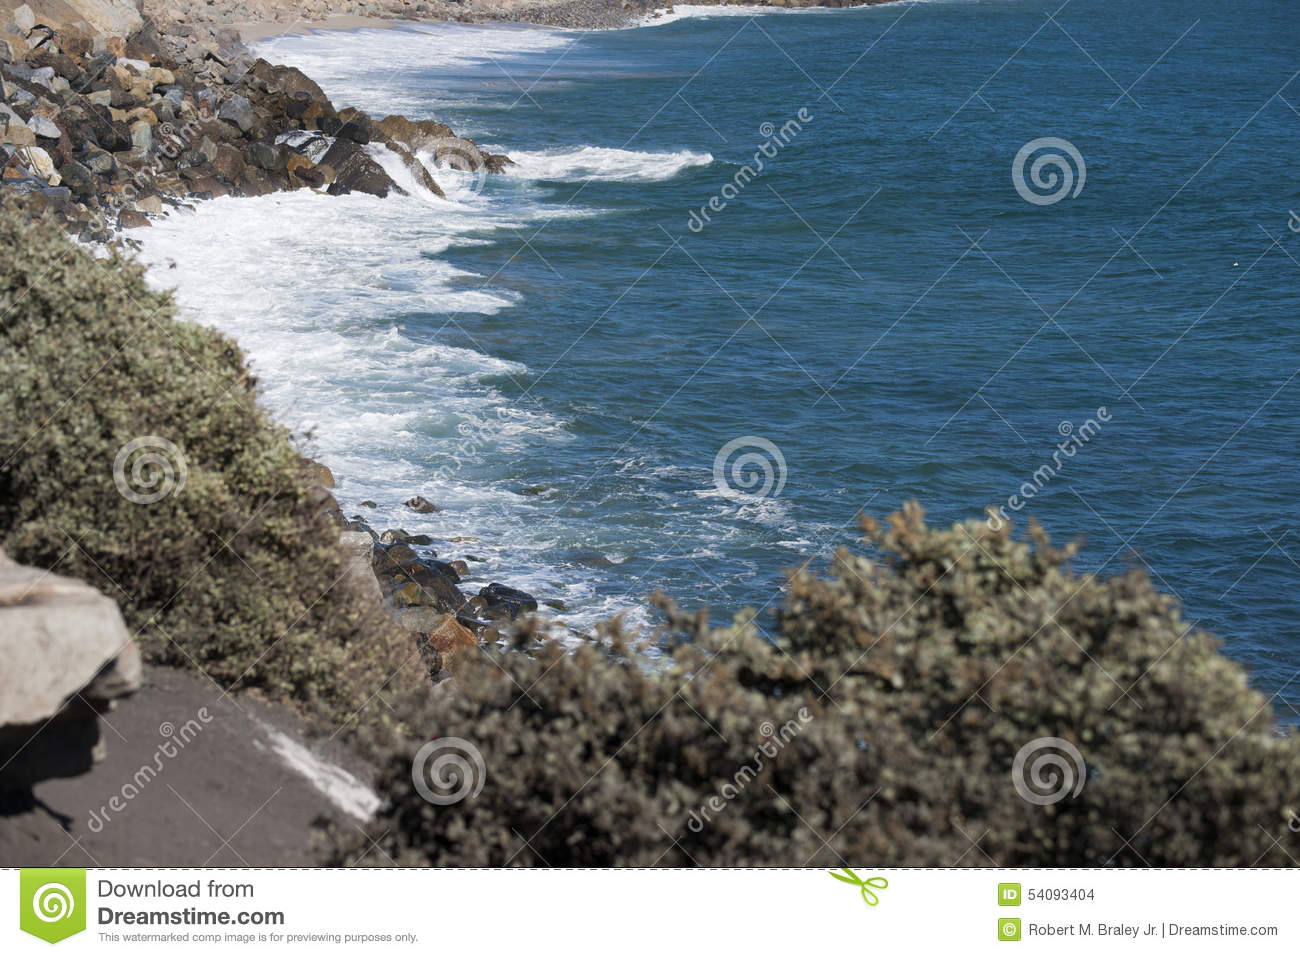 Download Point Magu Coastline Oxnard California Stock Photo - Image of california, ocean: 54093404